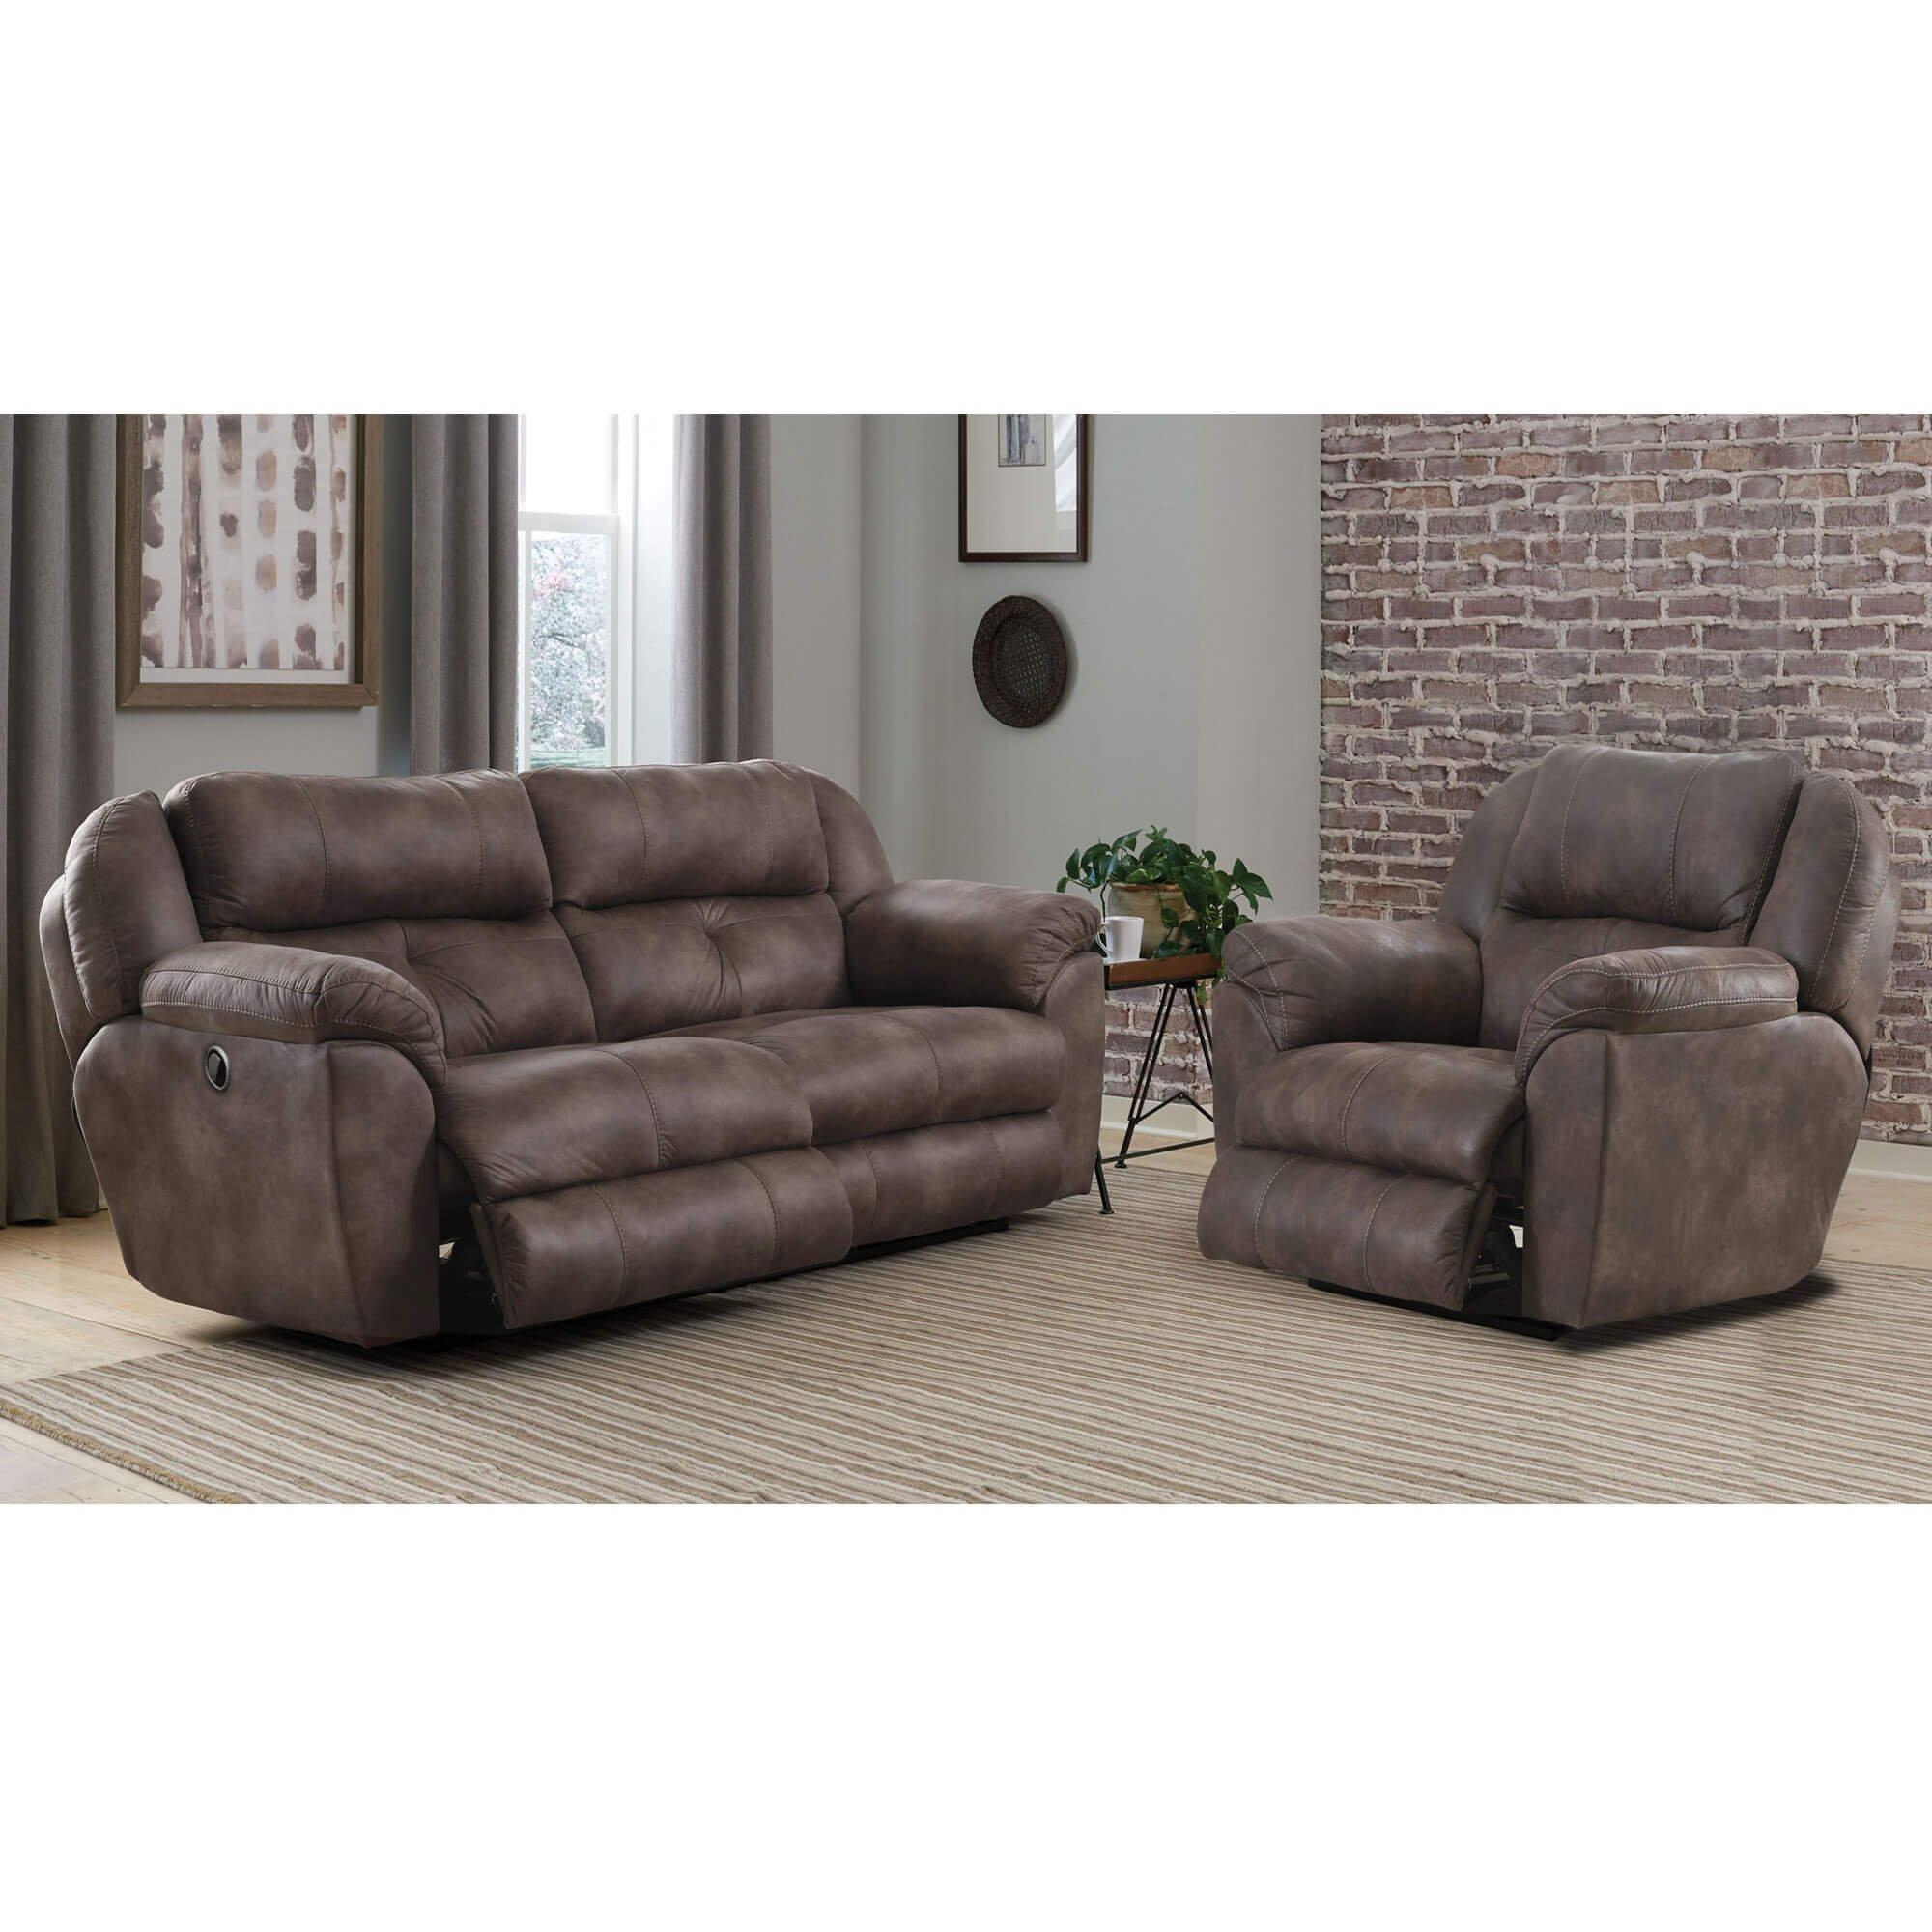 Rent To Own Catnapper 2 Piece Brady Reclining Sofa Wall Hugger Recliner At Aaron S Today